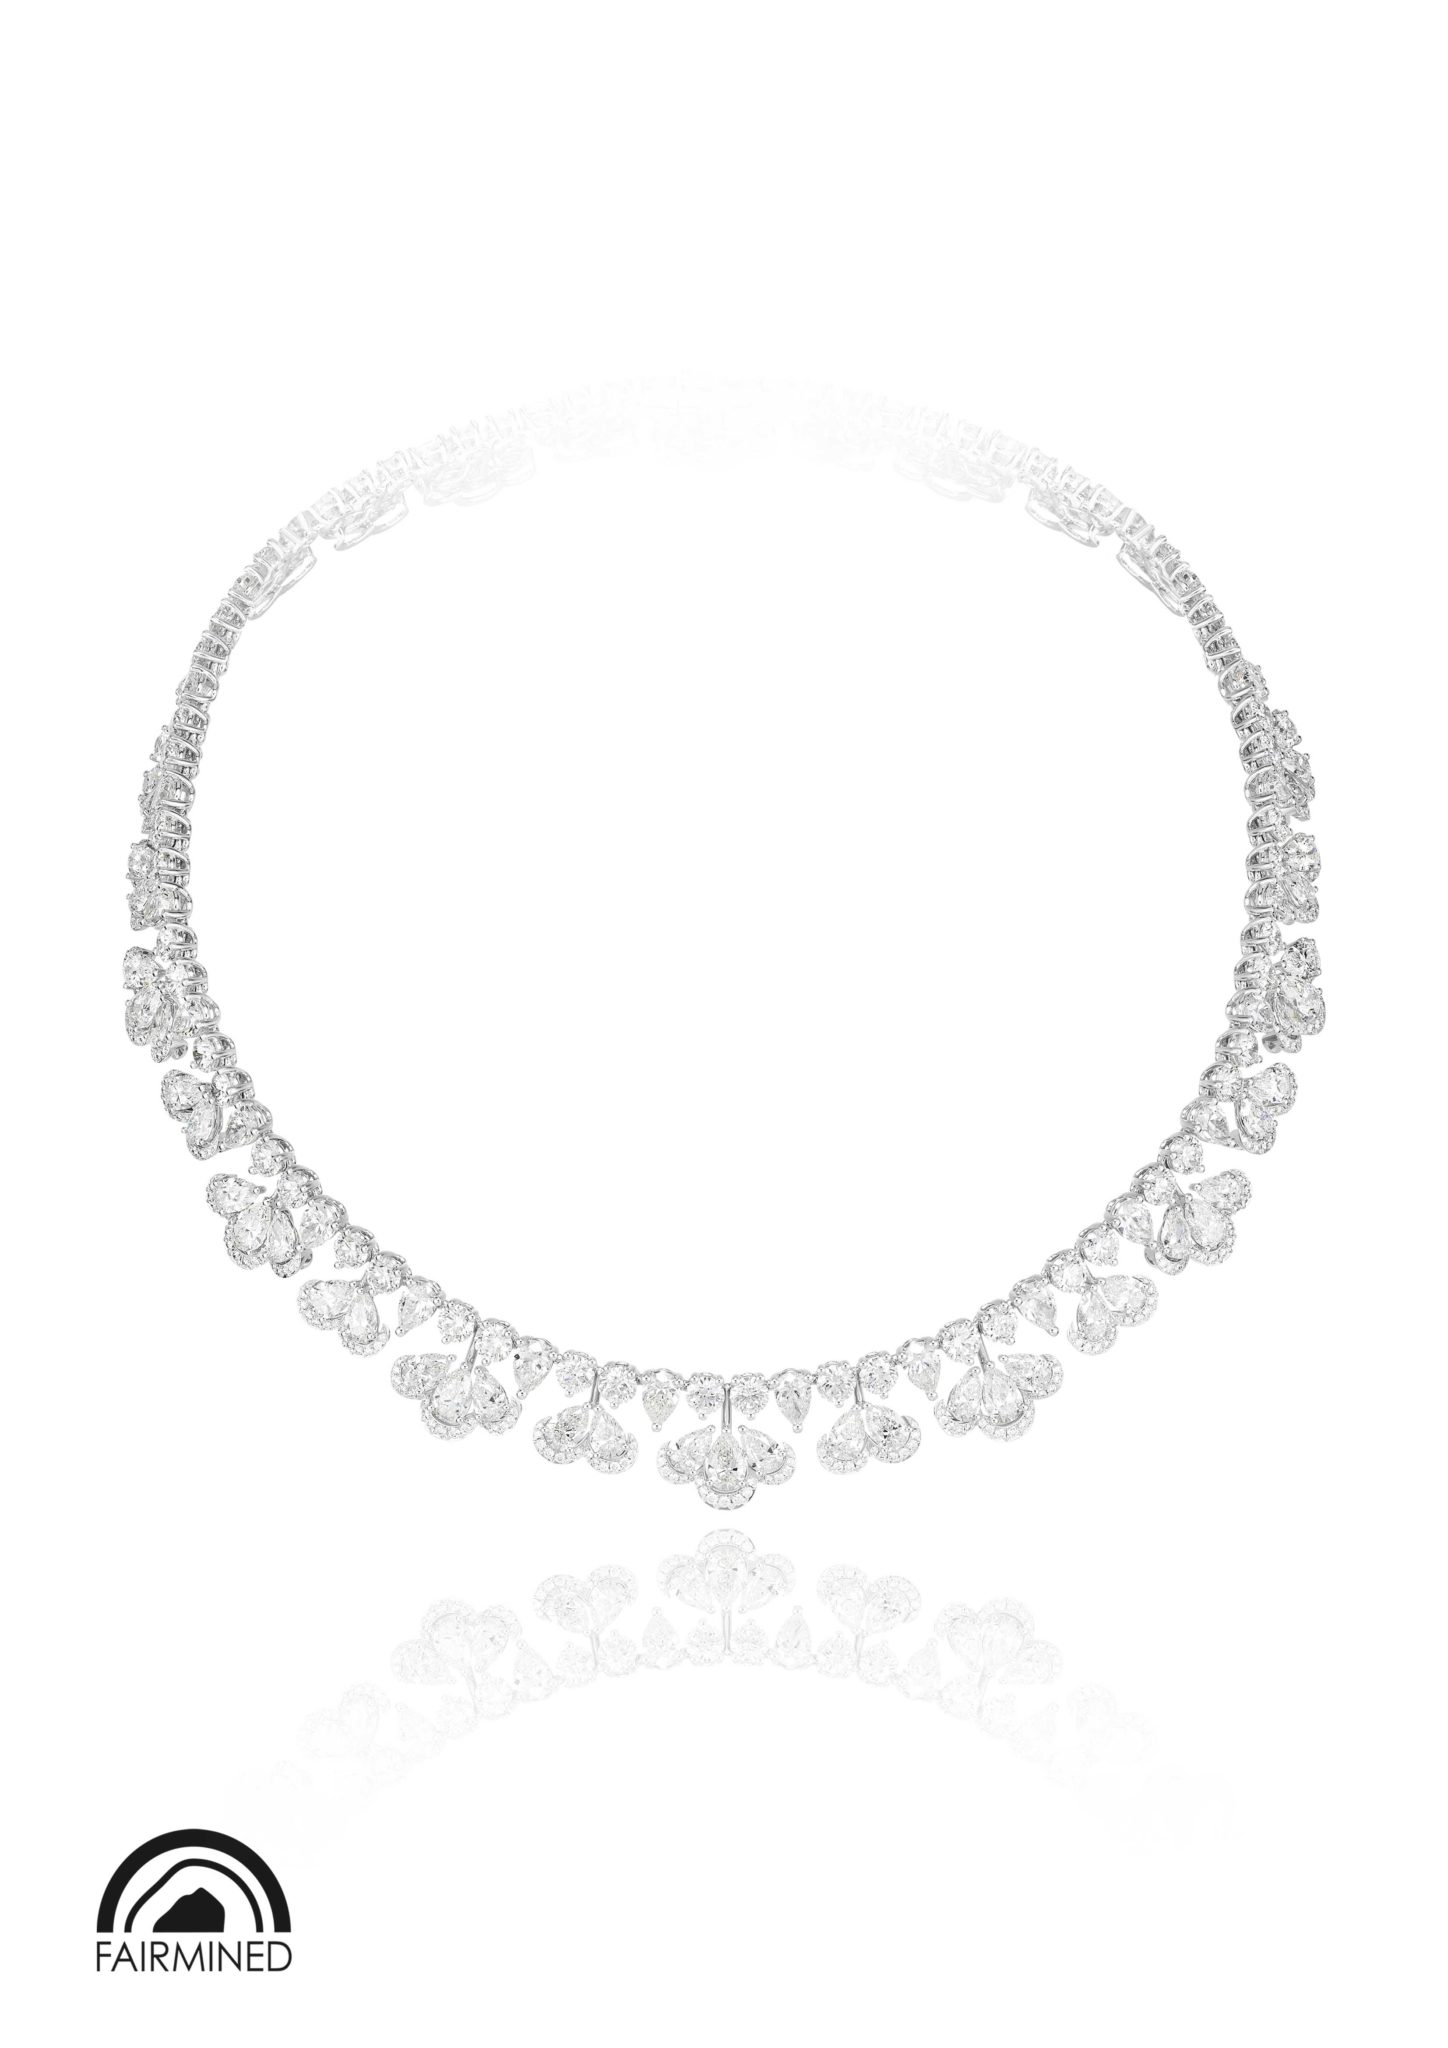 Green Carpet Collection Necklace 818097-1001